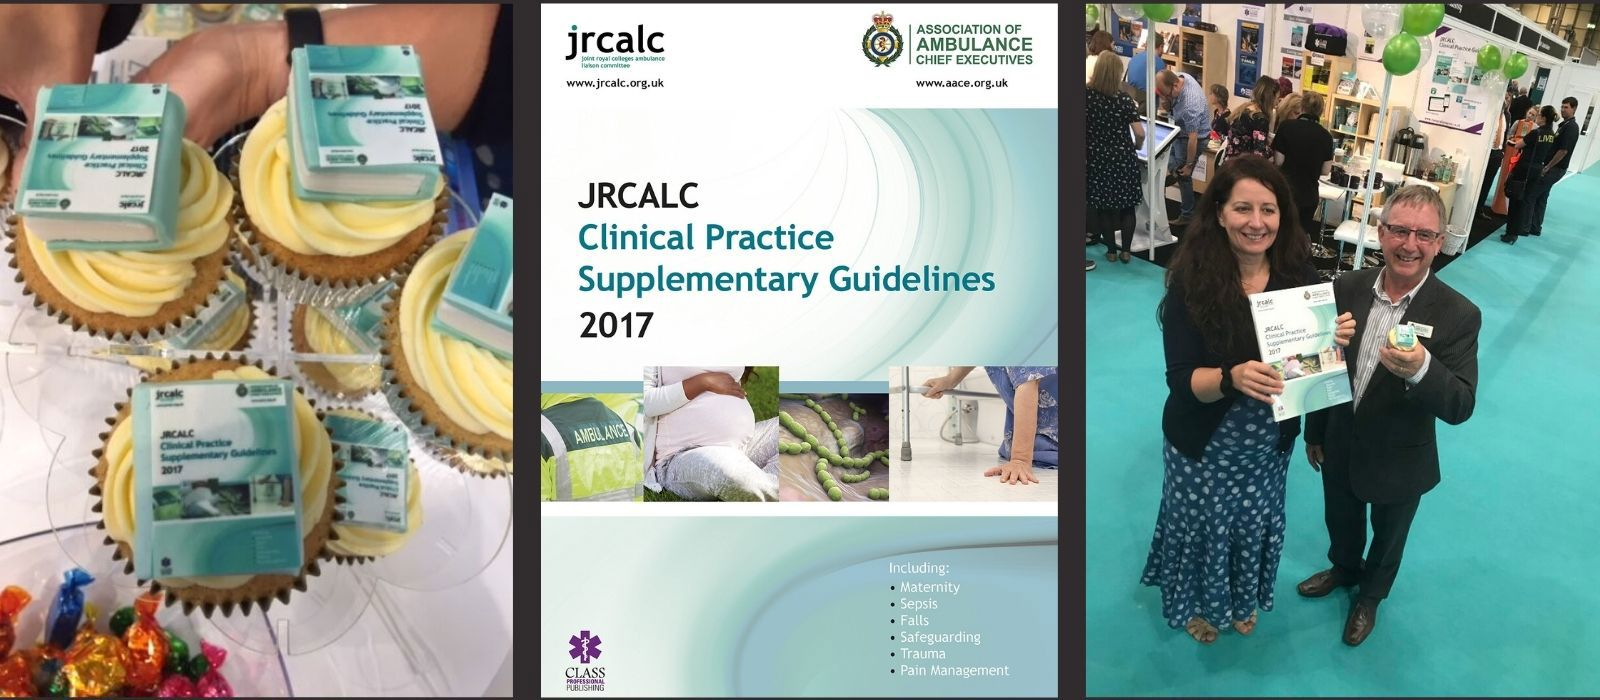 New ambulance guidelines on adrenal crisis